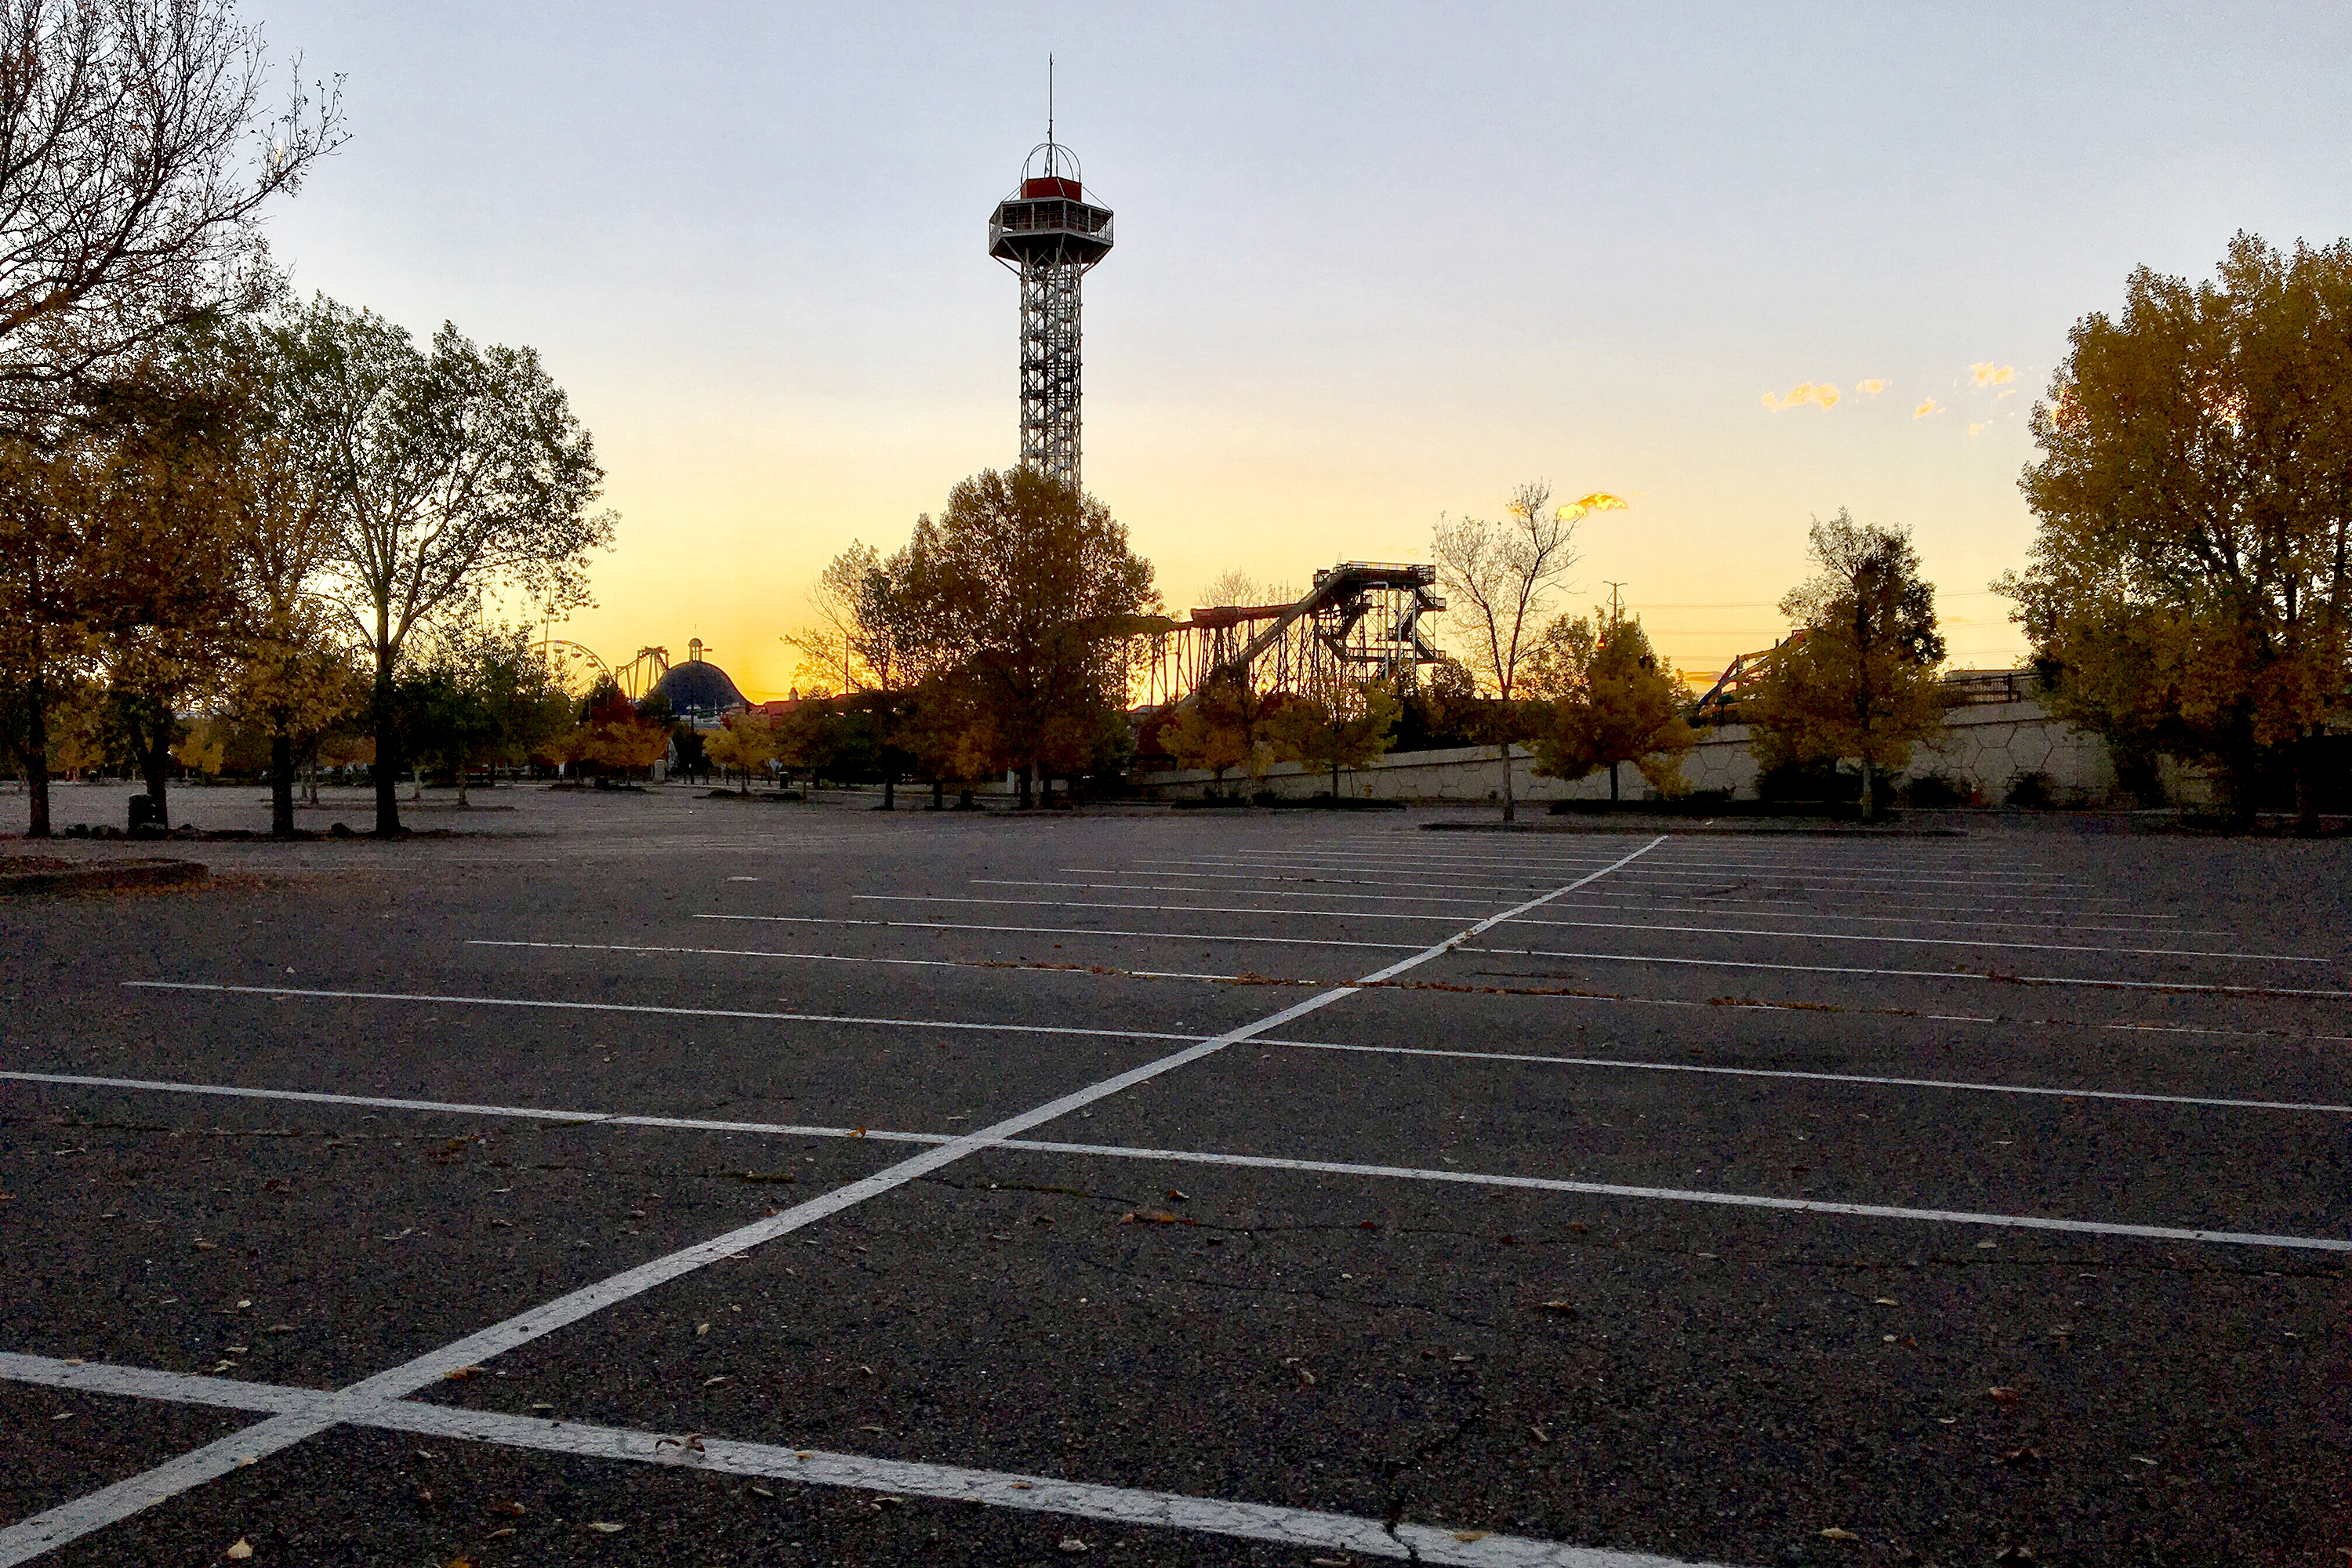 The Elitch Gardens parking lot.